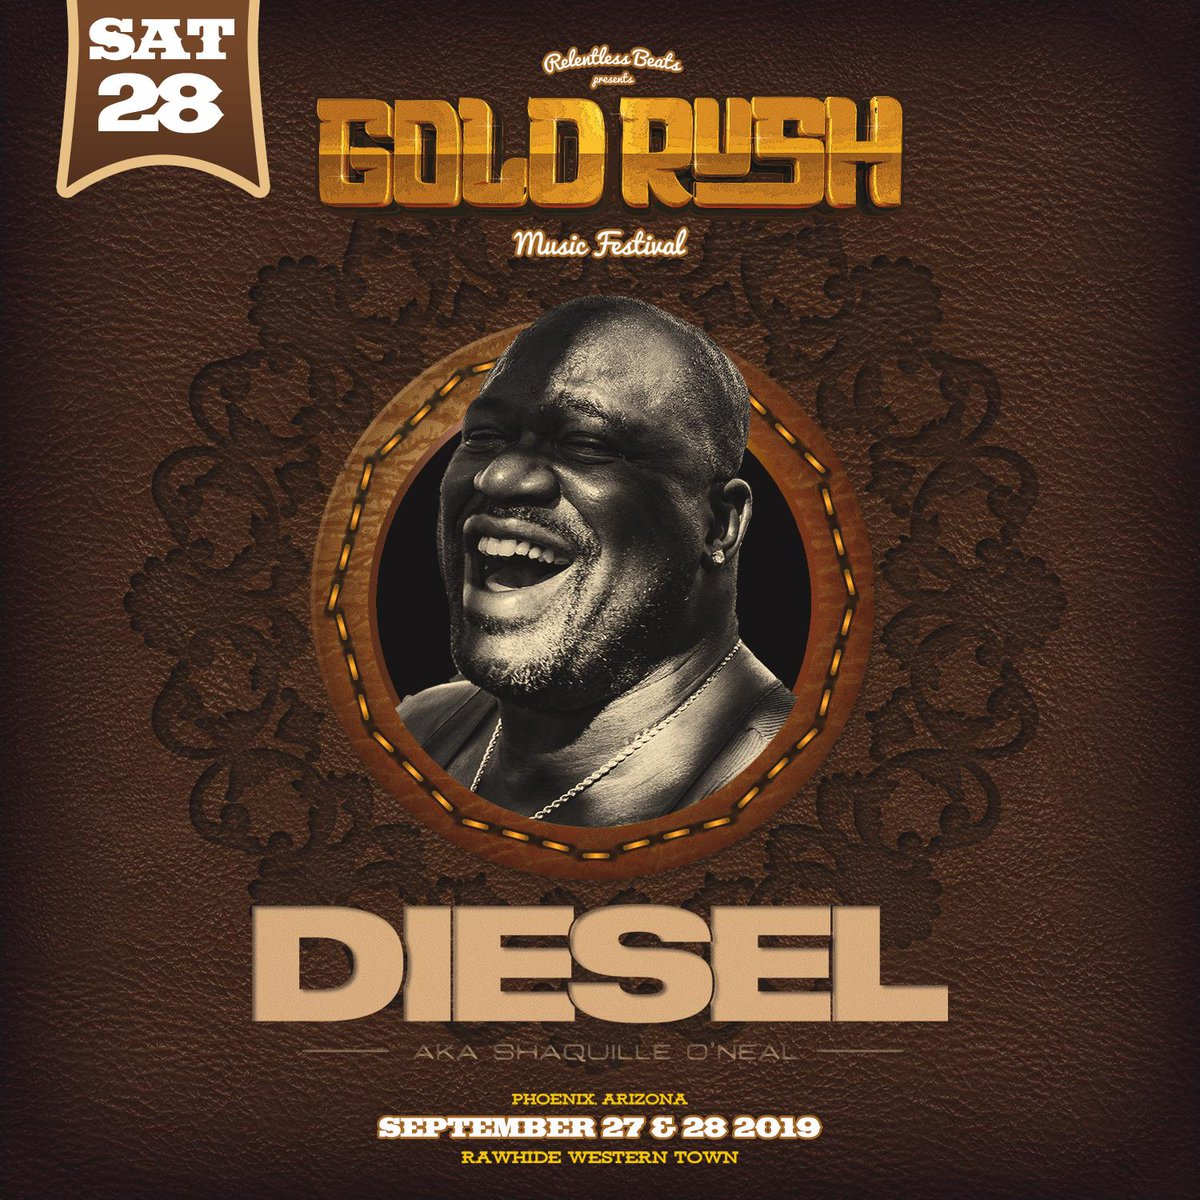 Goldrush Music Fest on Twitter: